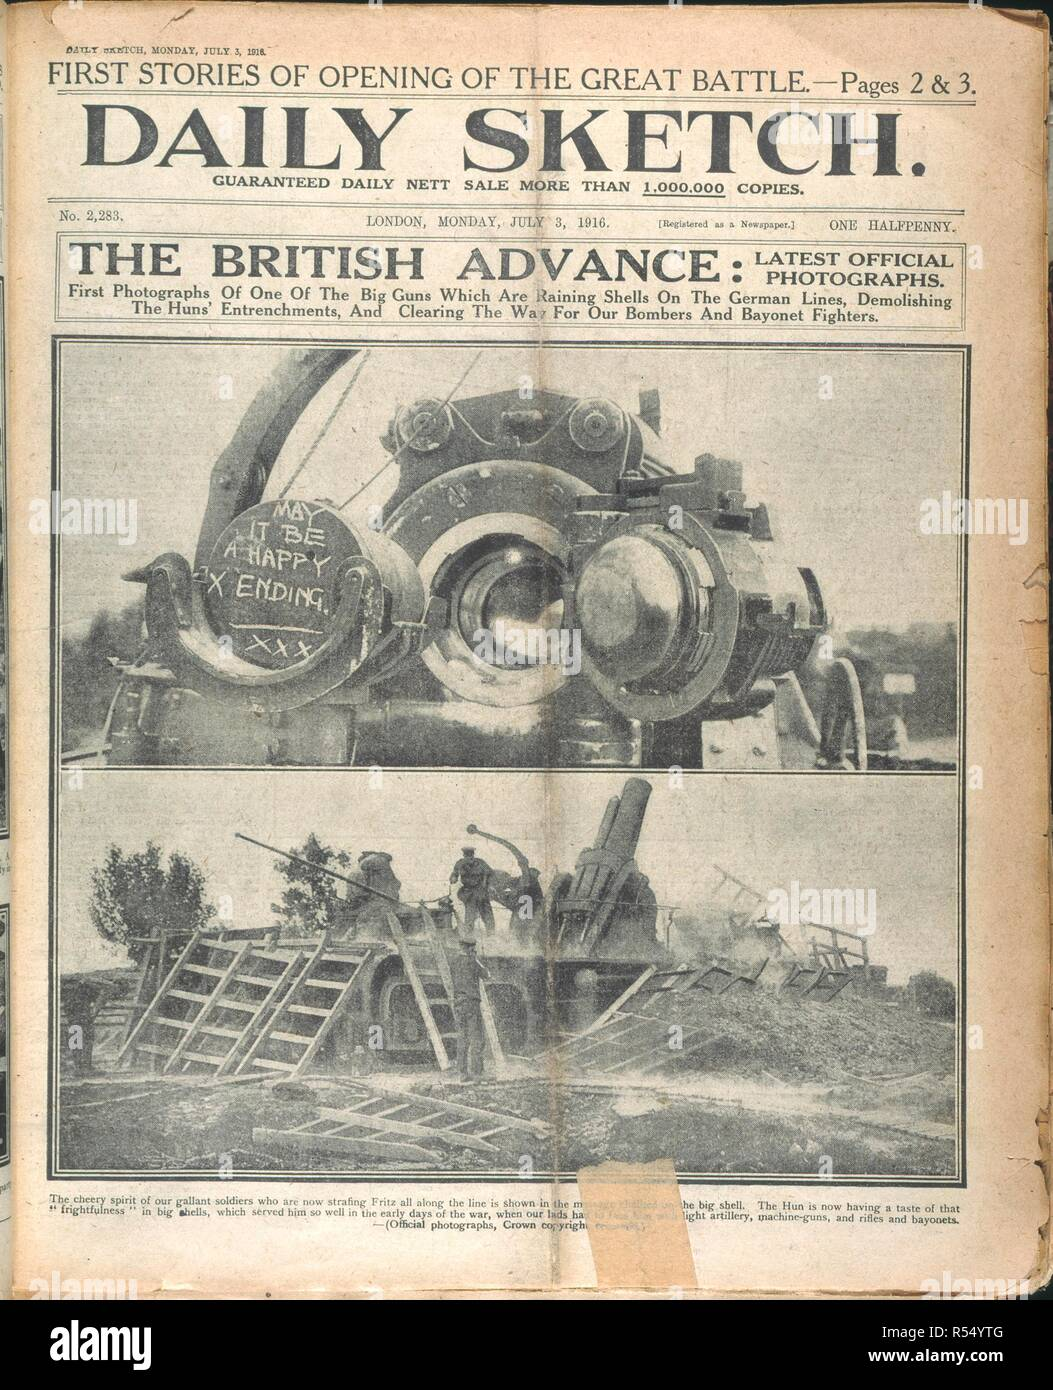 'The British advance'. Photographs of the British artillery, the 'big guns'. Daily Sketch. London, 1916. Source: Daily Sketch, 3 July 1916, front page. - Stock Image